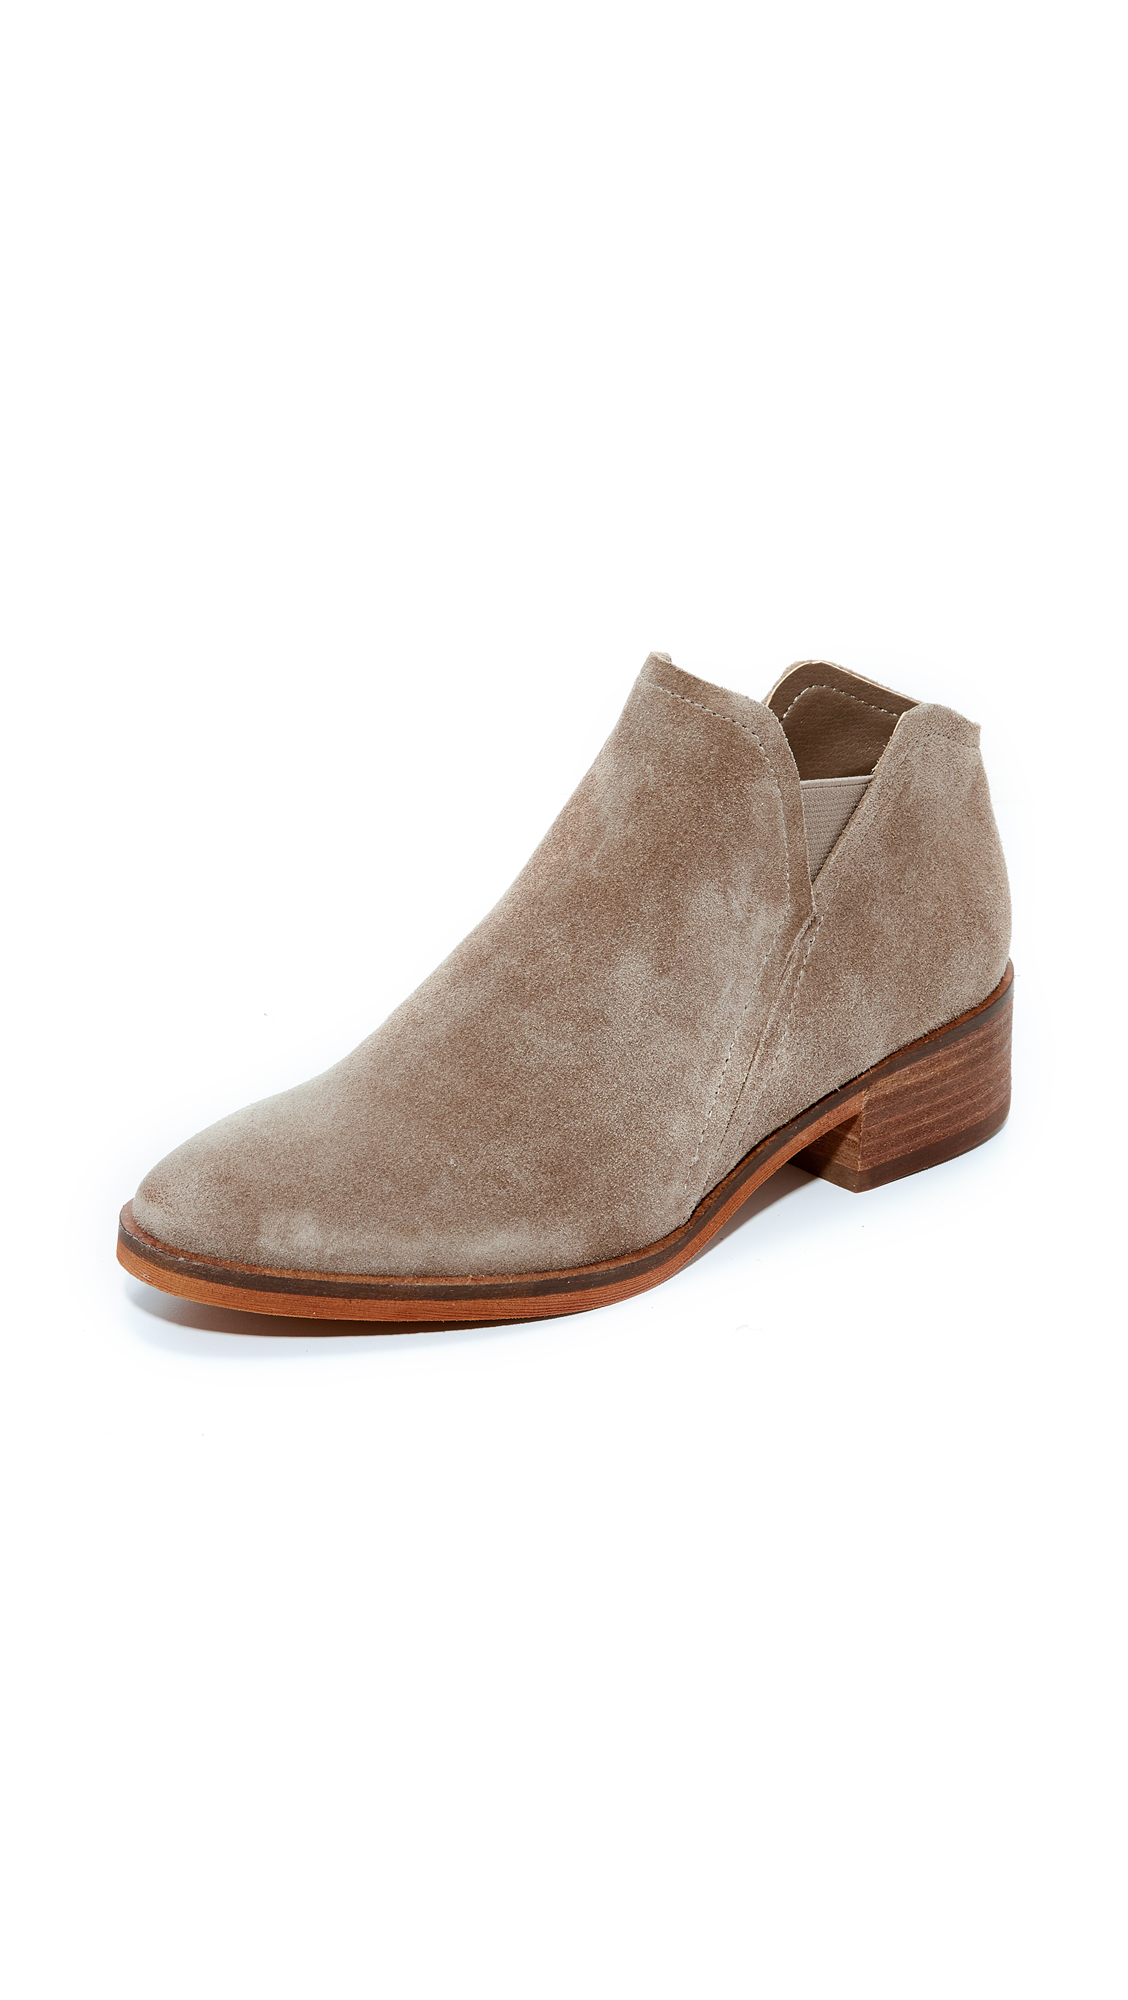 Dolce Vita Tay Suede Booties - Dark Taupe